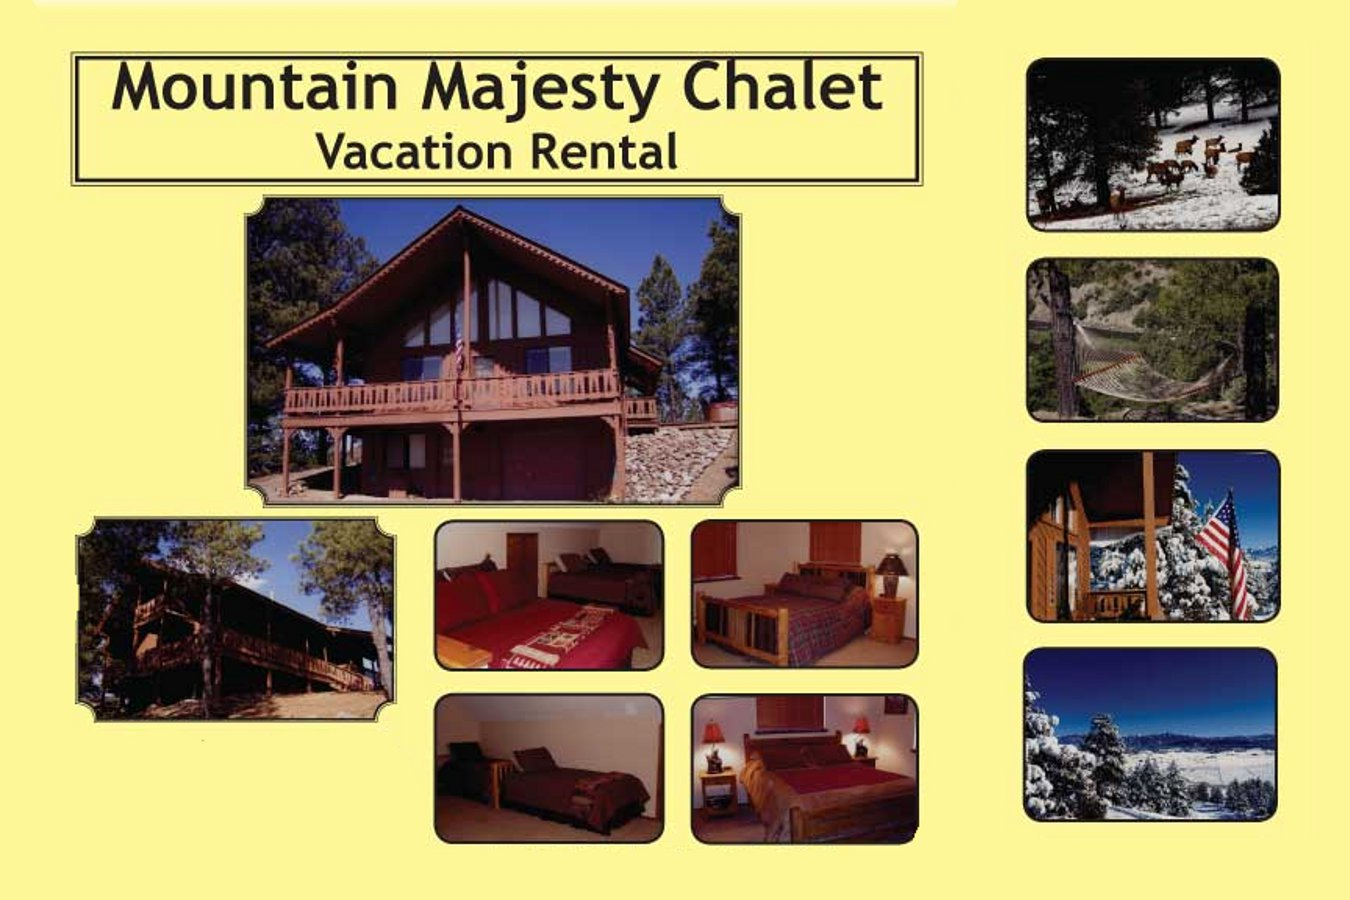 Mountain Majesty Chalet